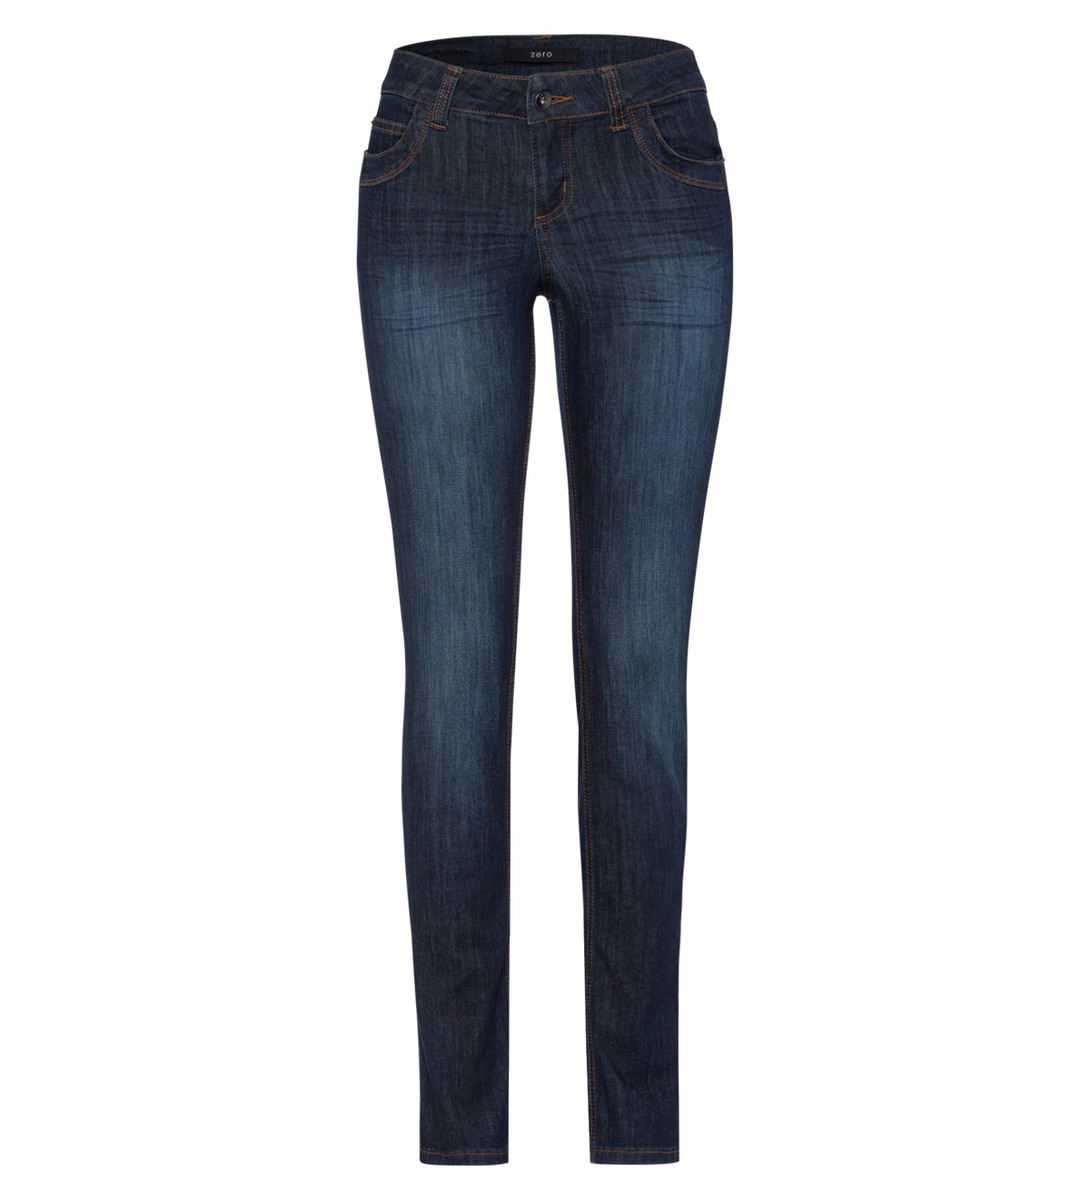 Straight Fit-Jeans Kingston 32 Inch in clean dark blue rinse